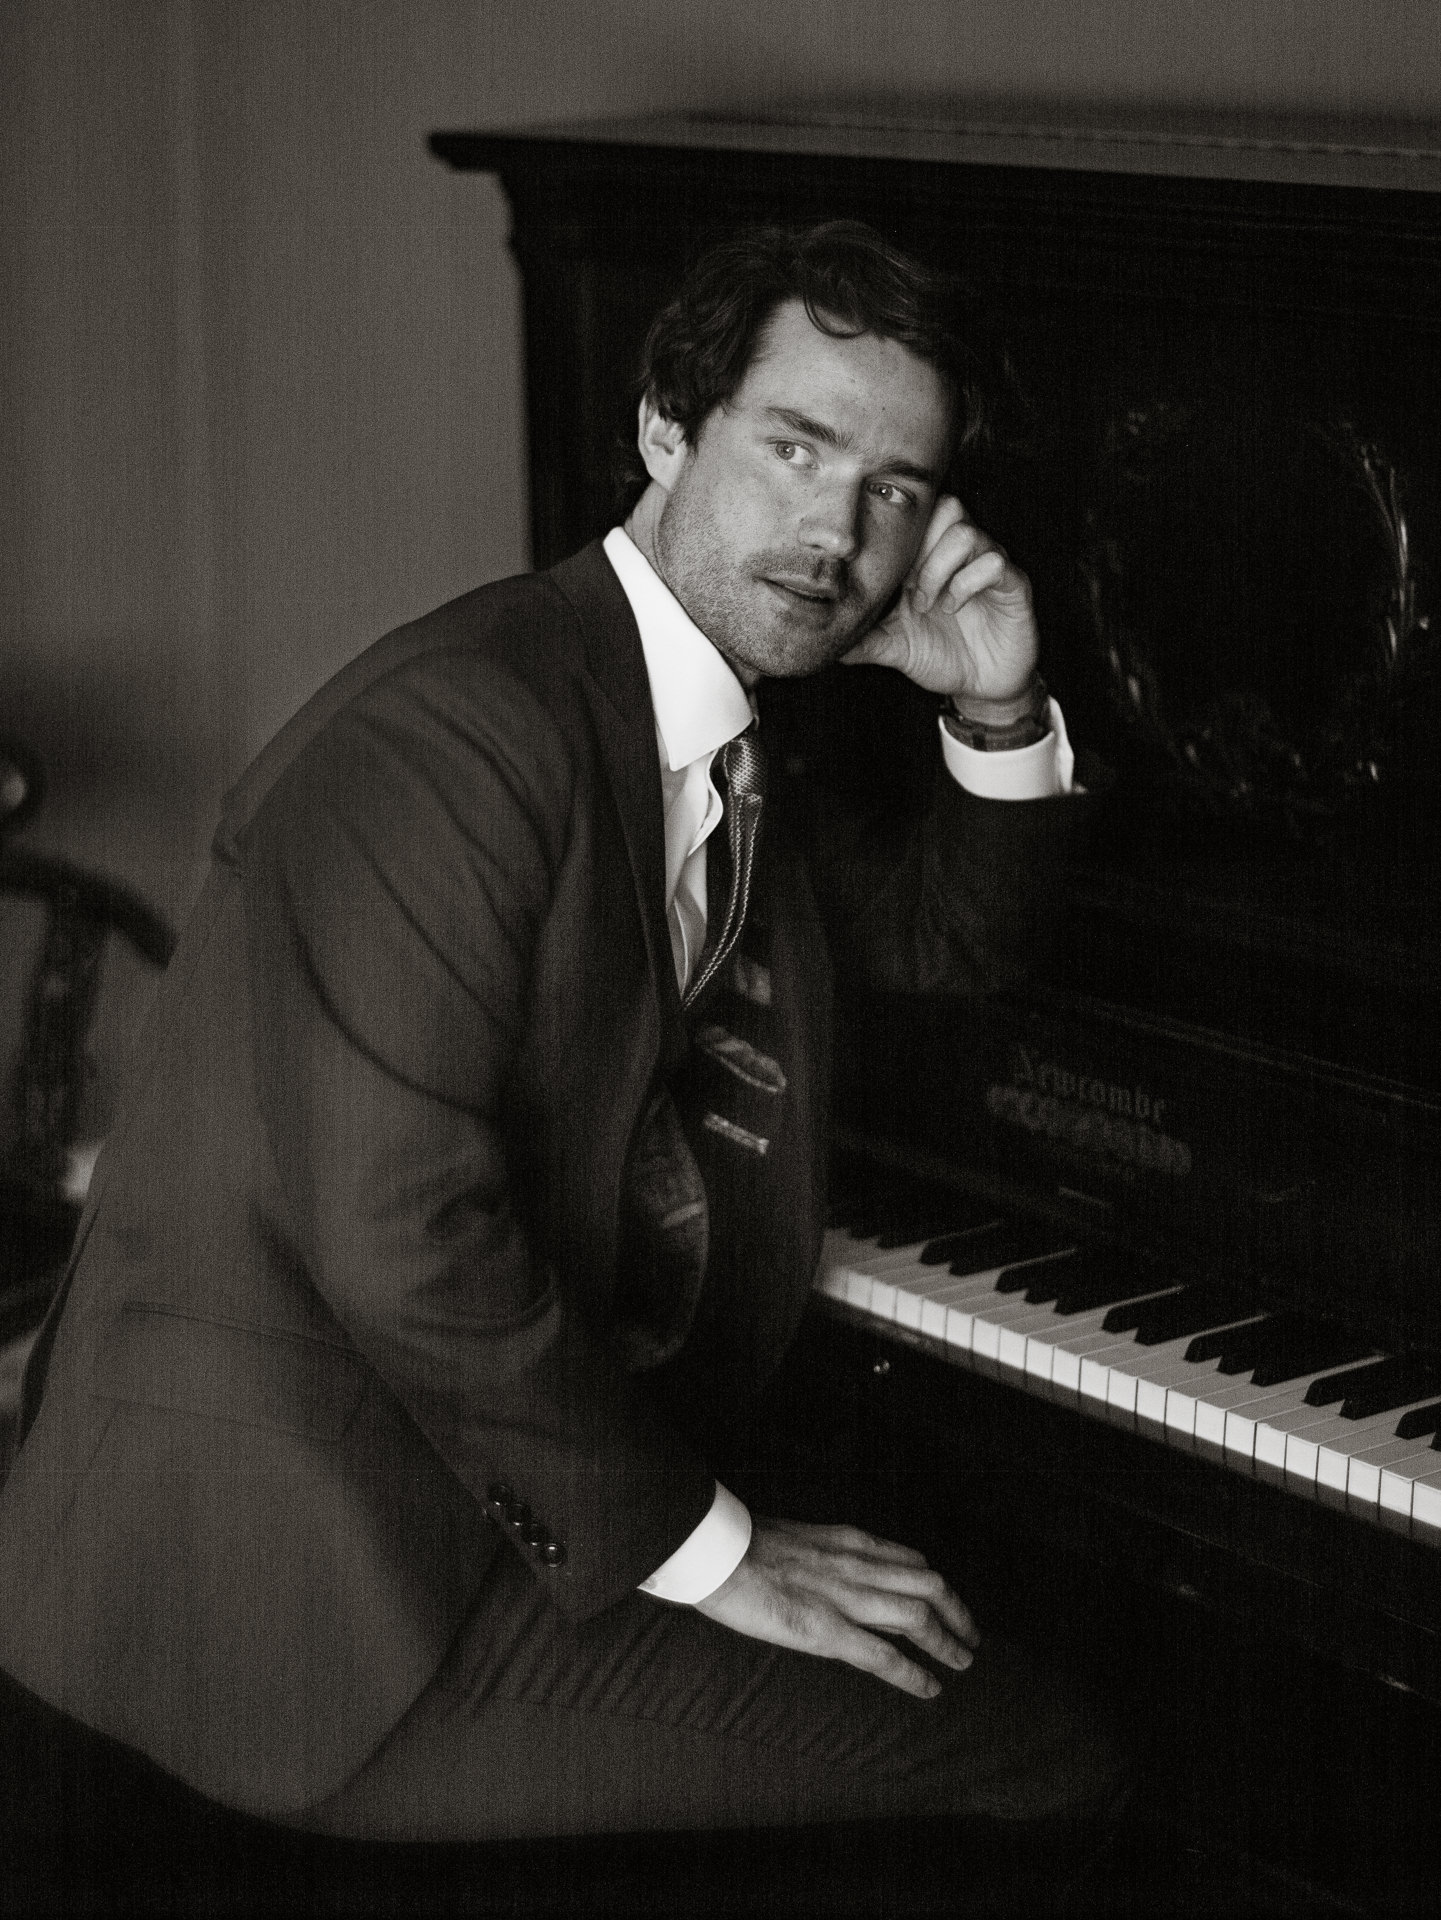 Groom portrait at piano - photo by Joel and Justyna